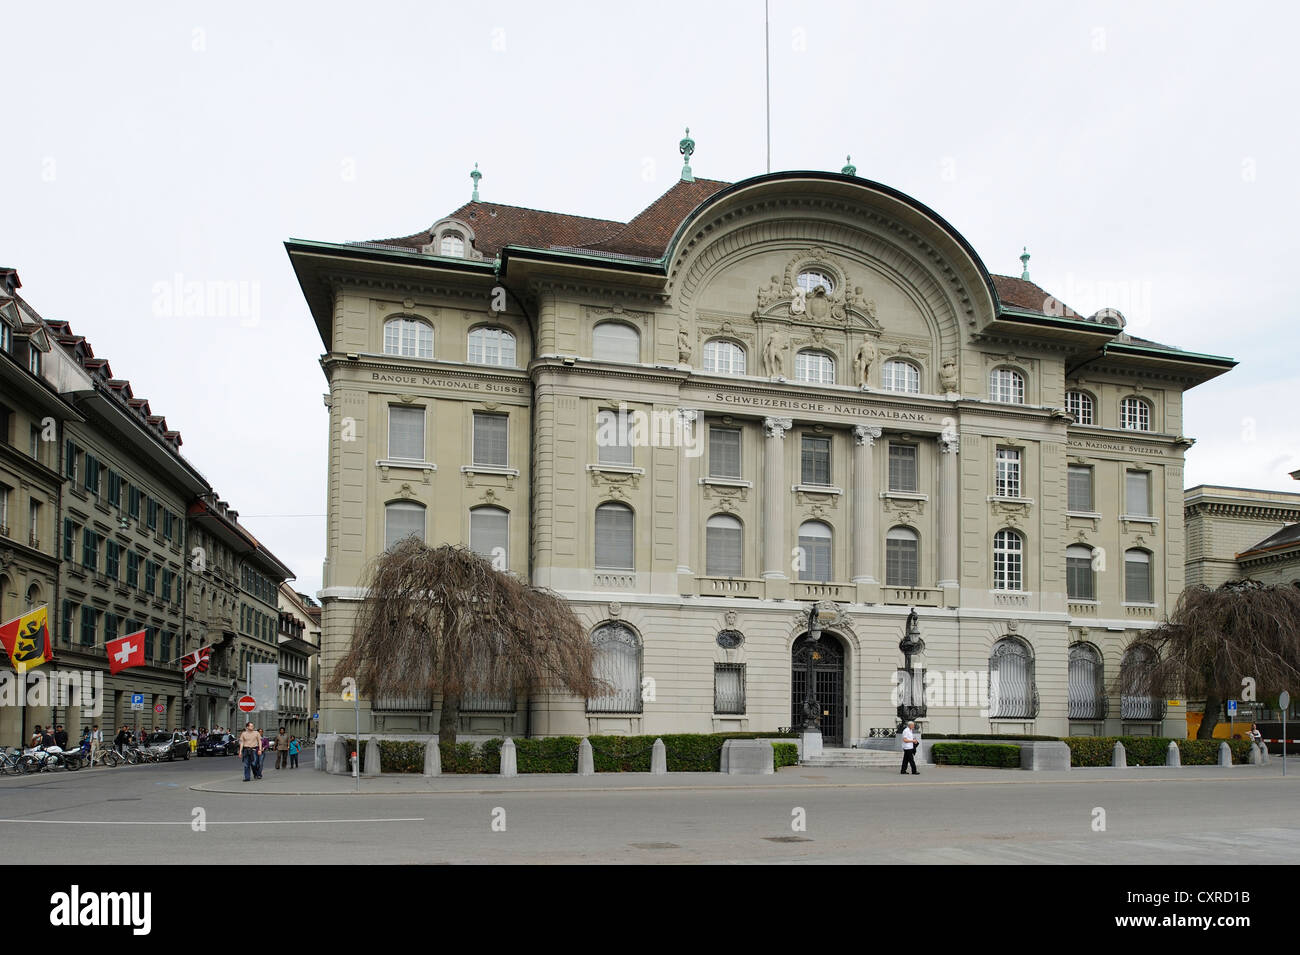 Banque nationale suisse, Berne, Suisse, Europe Photo Stock